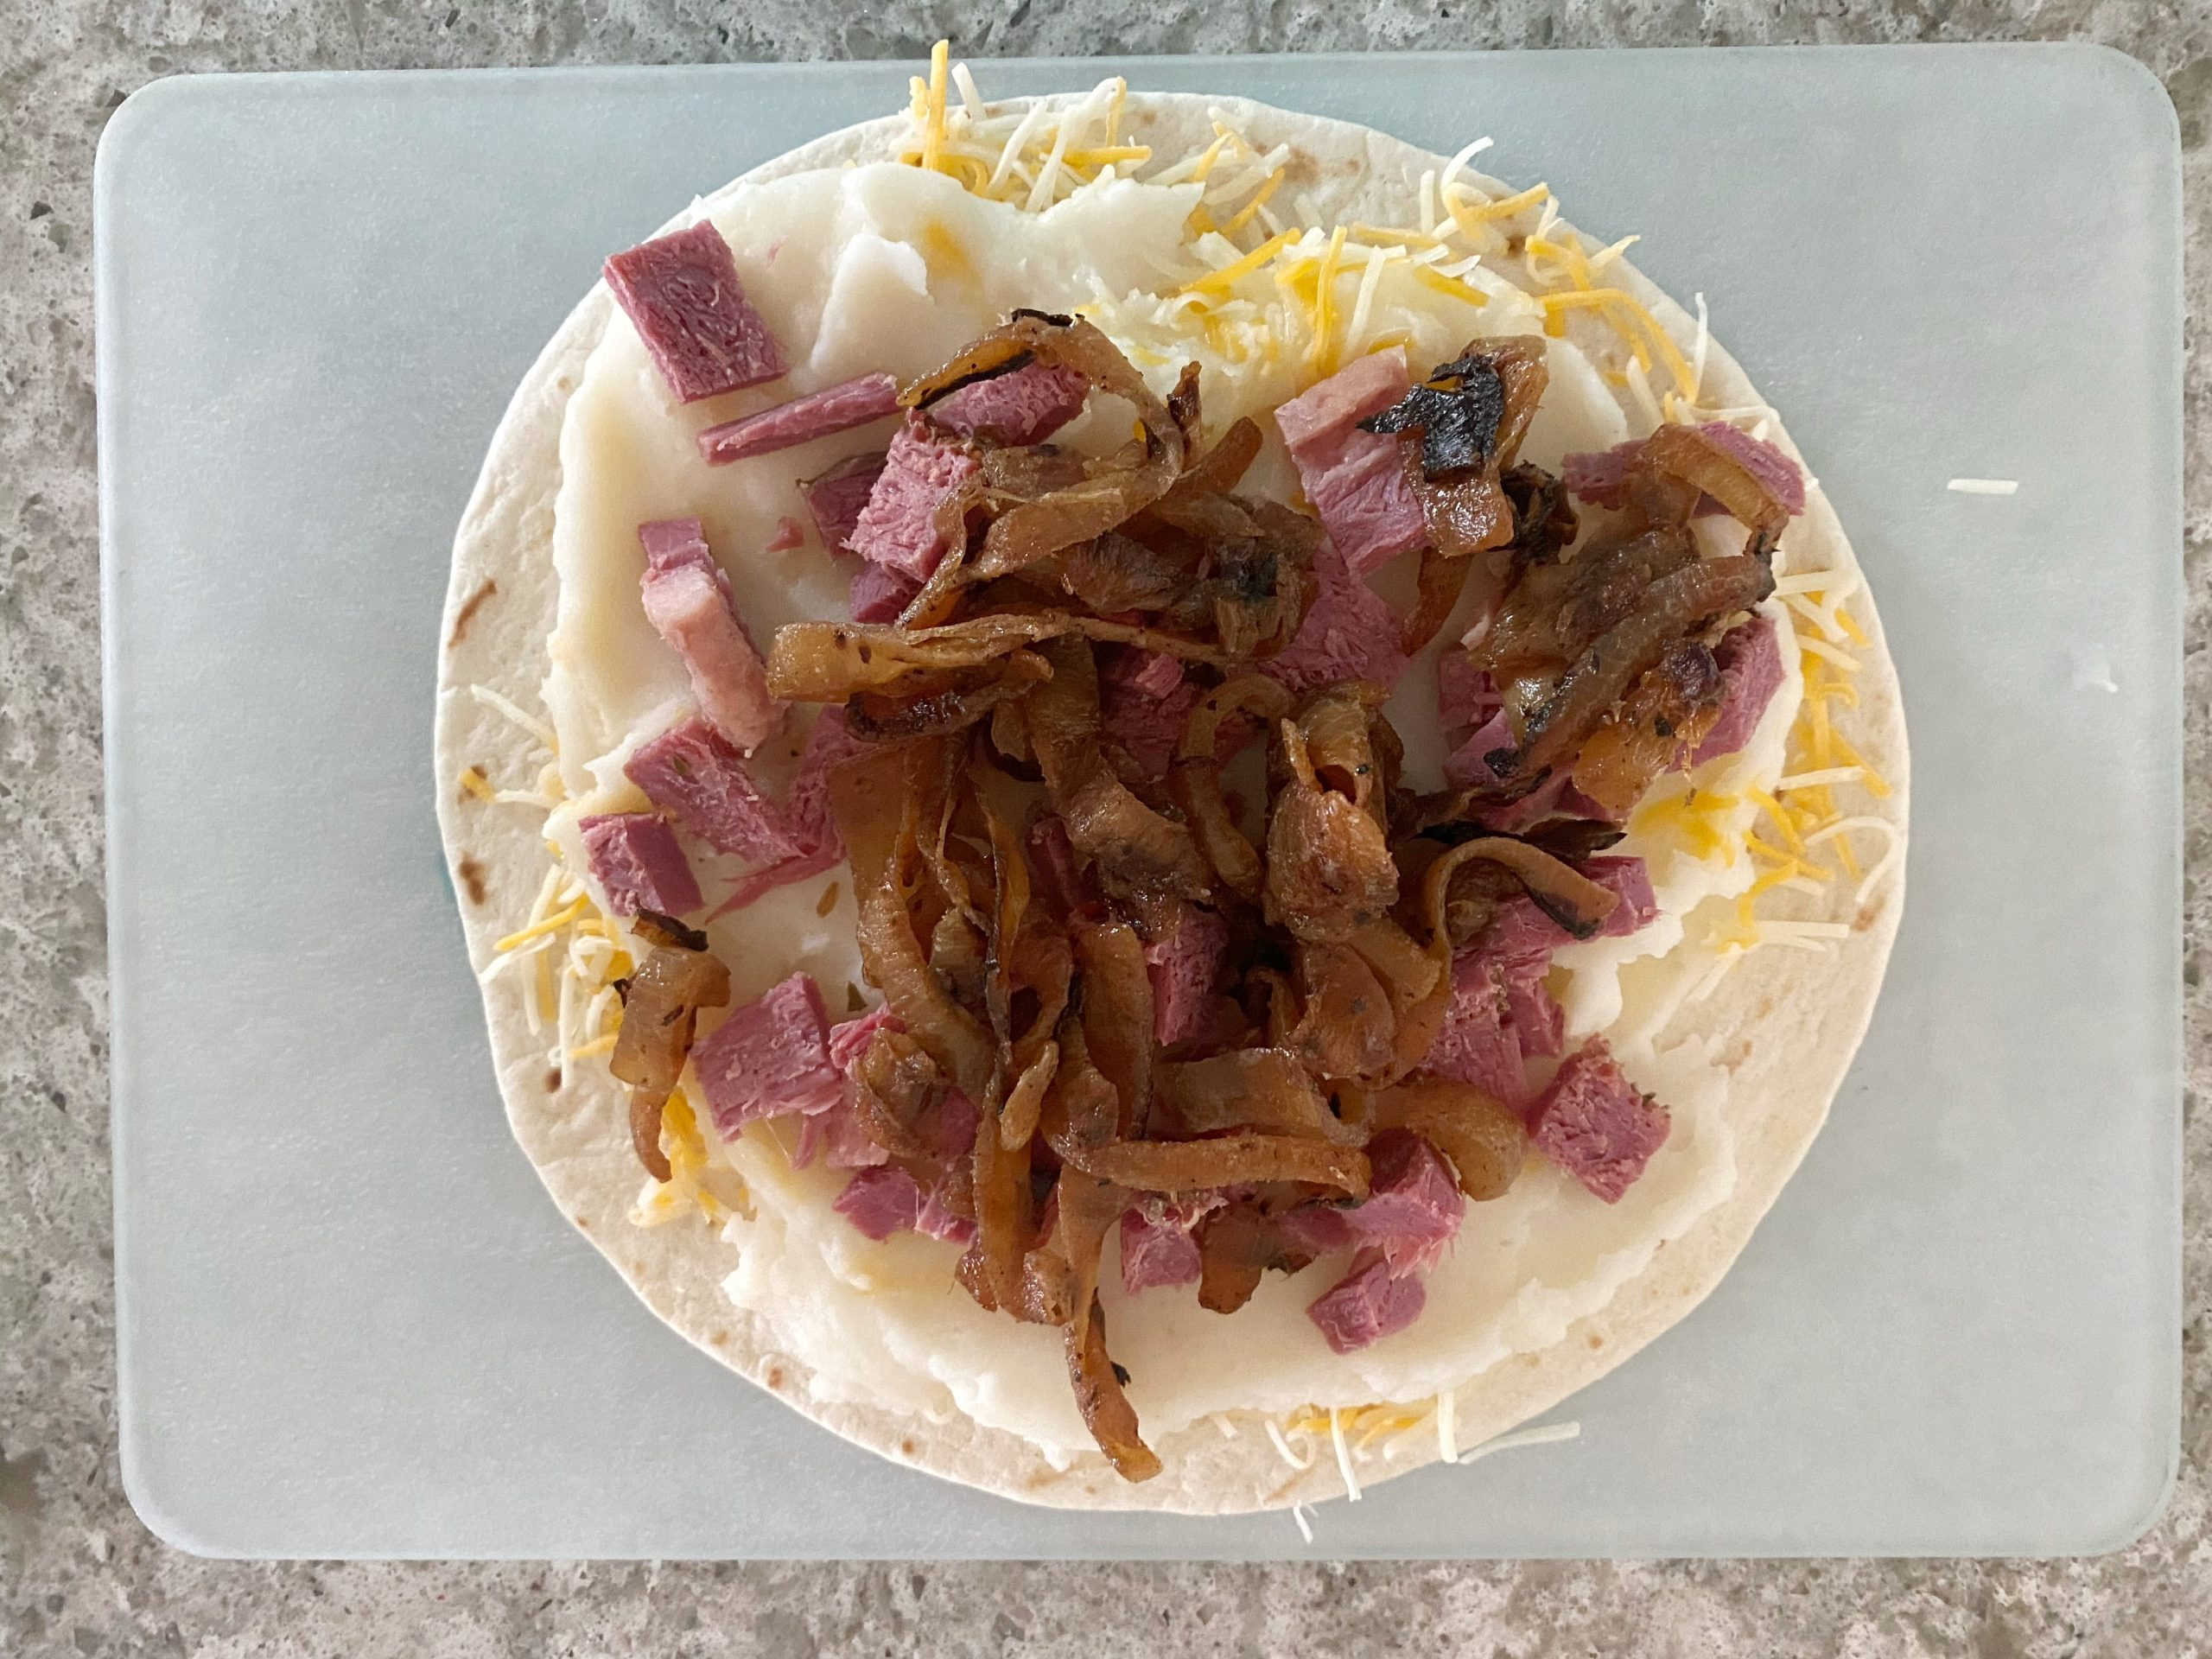 caramelized onion, corned beef, cheese and mashed potatoes on tortilla